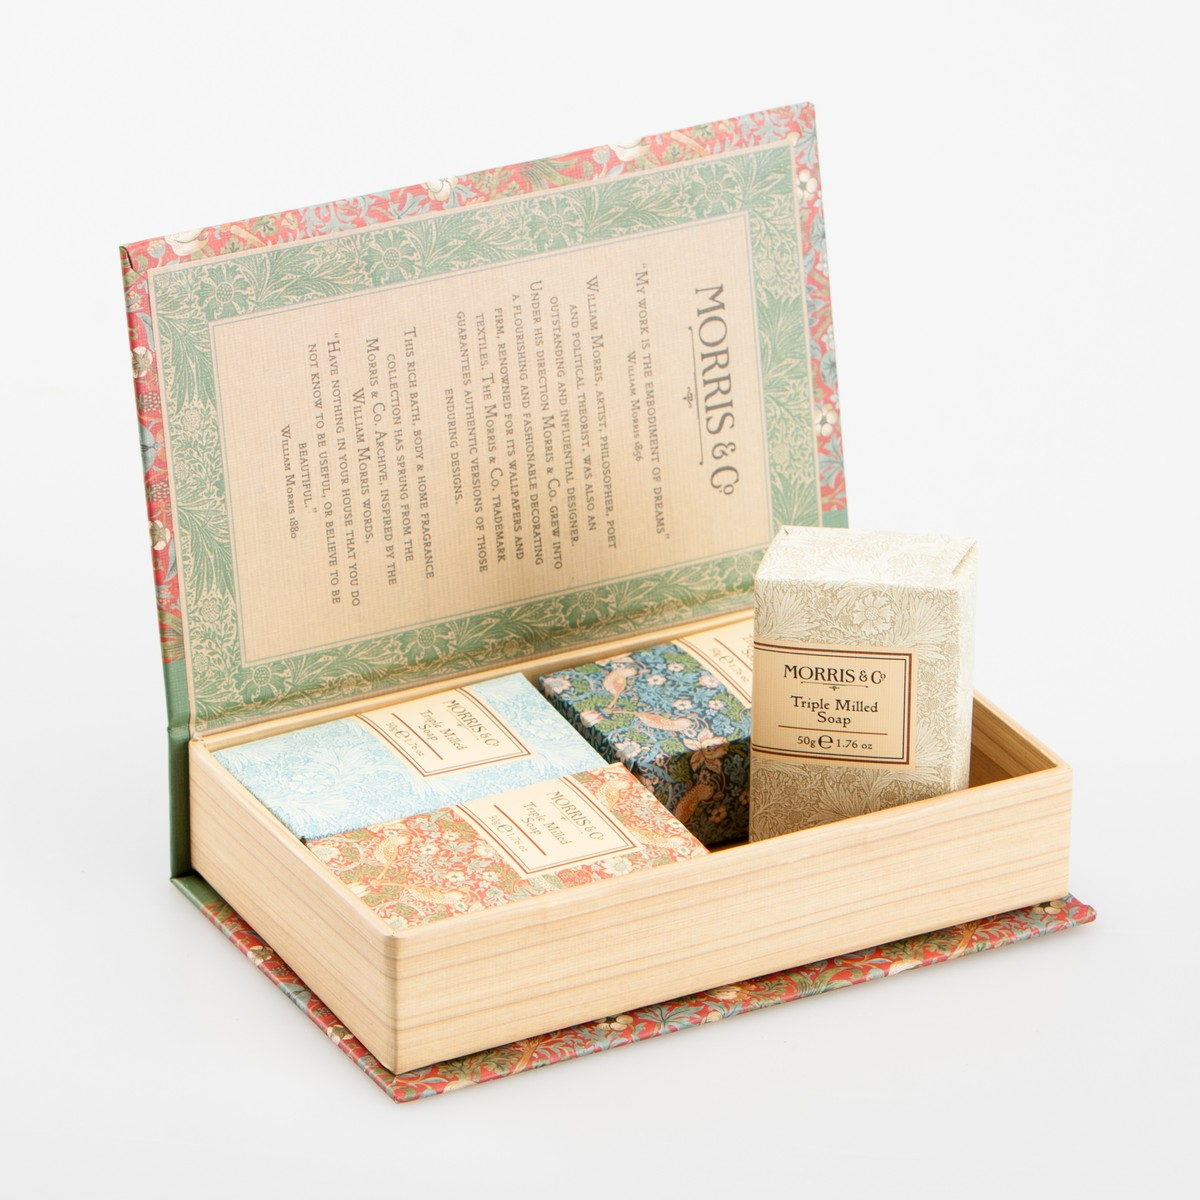 MORRIS & CO Coffret Savons Morris & Co 4x50gr  4x50gr